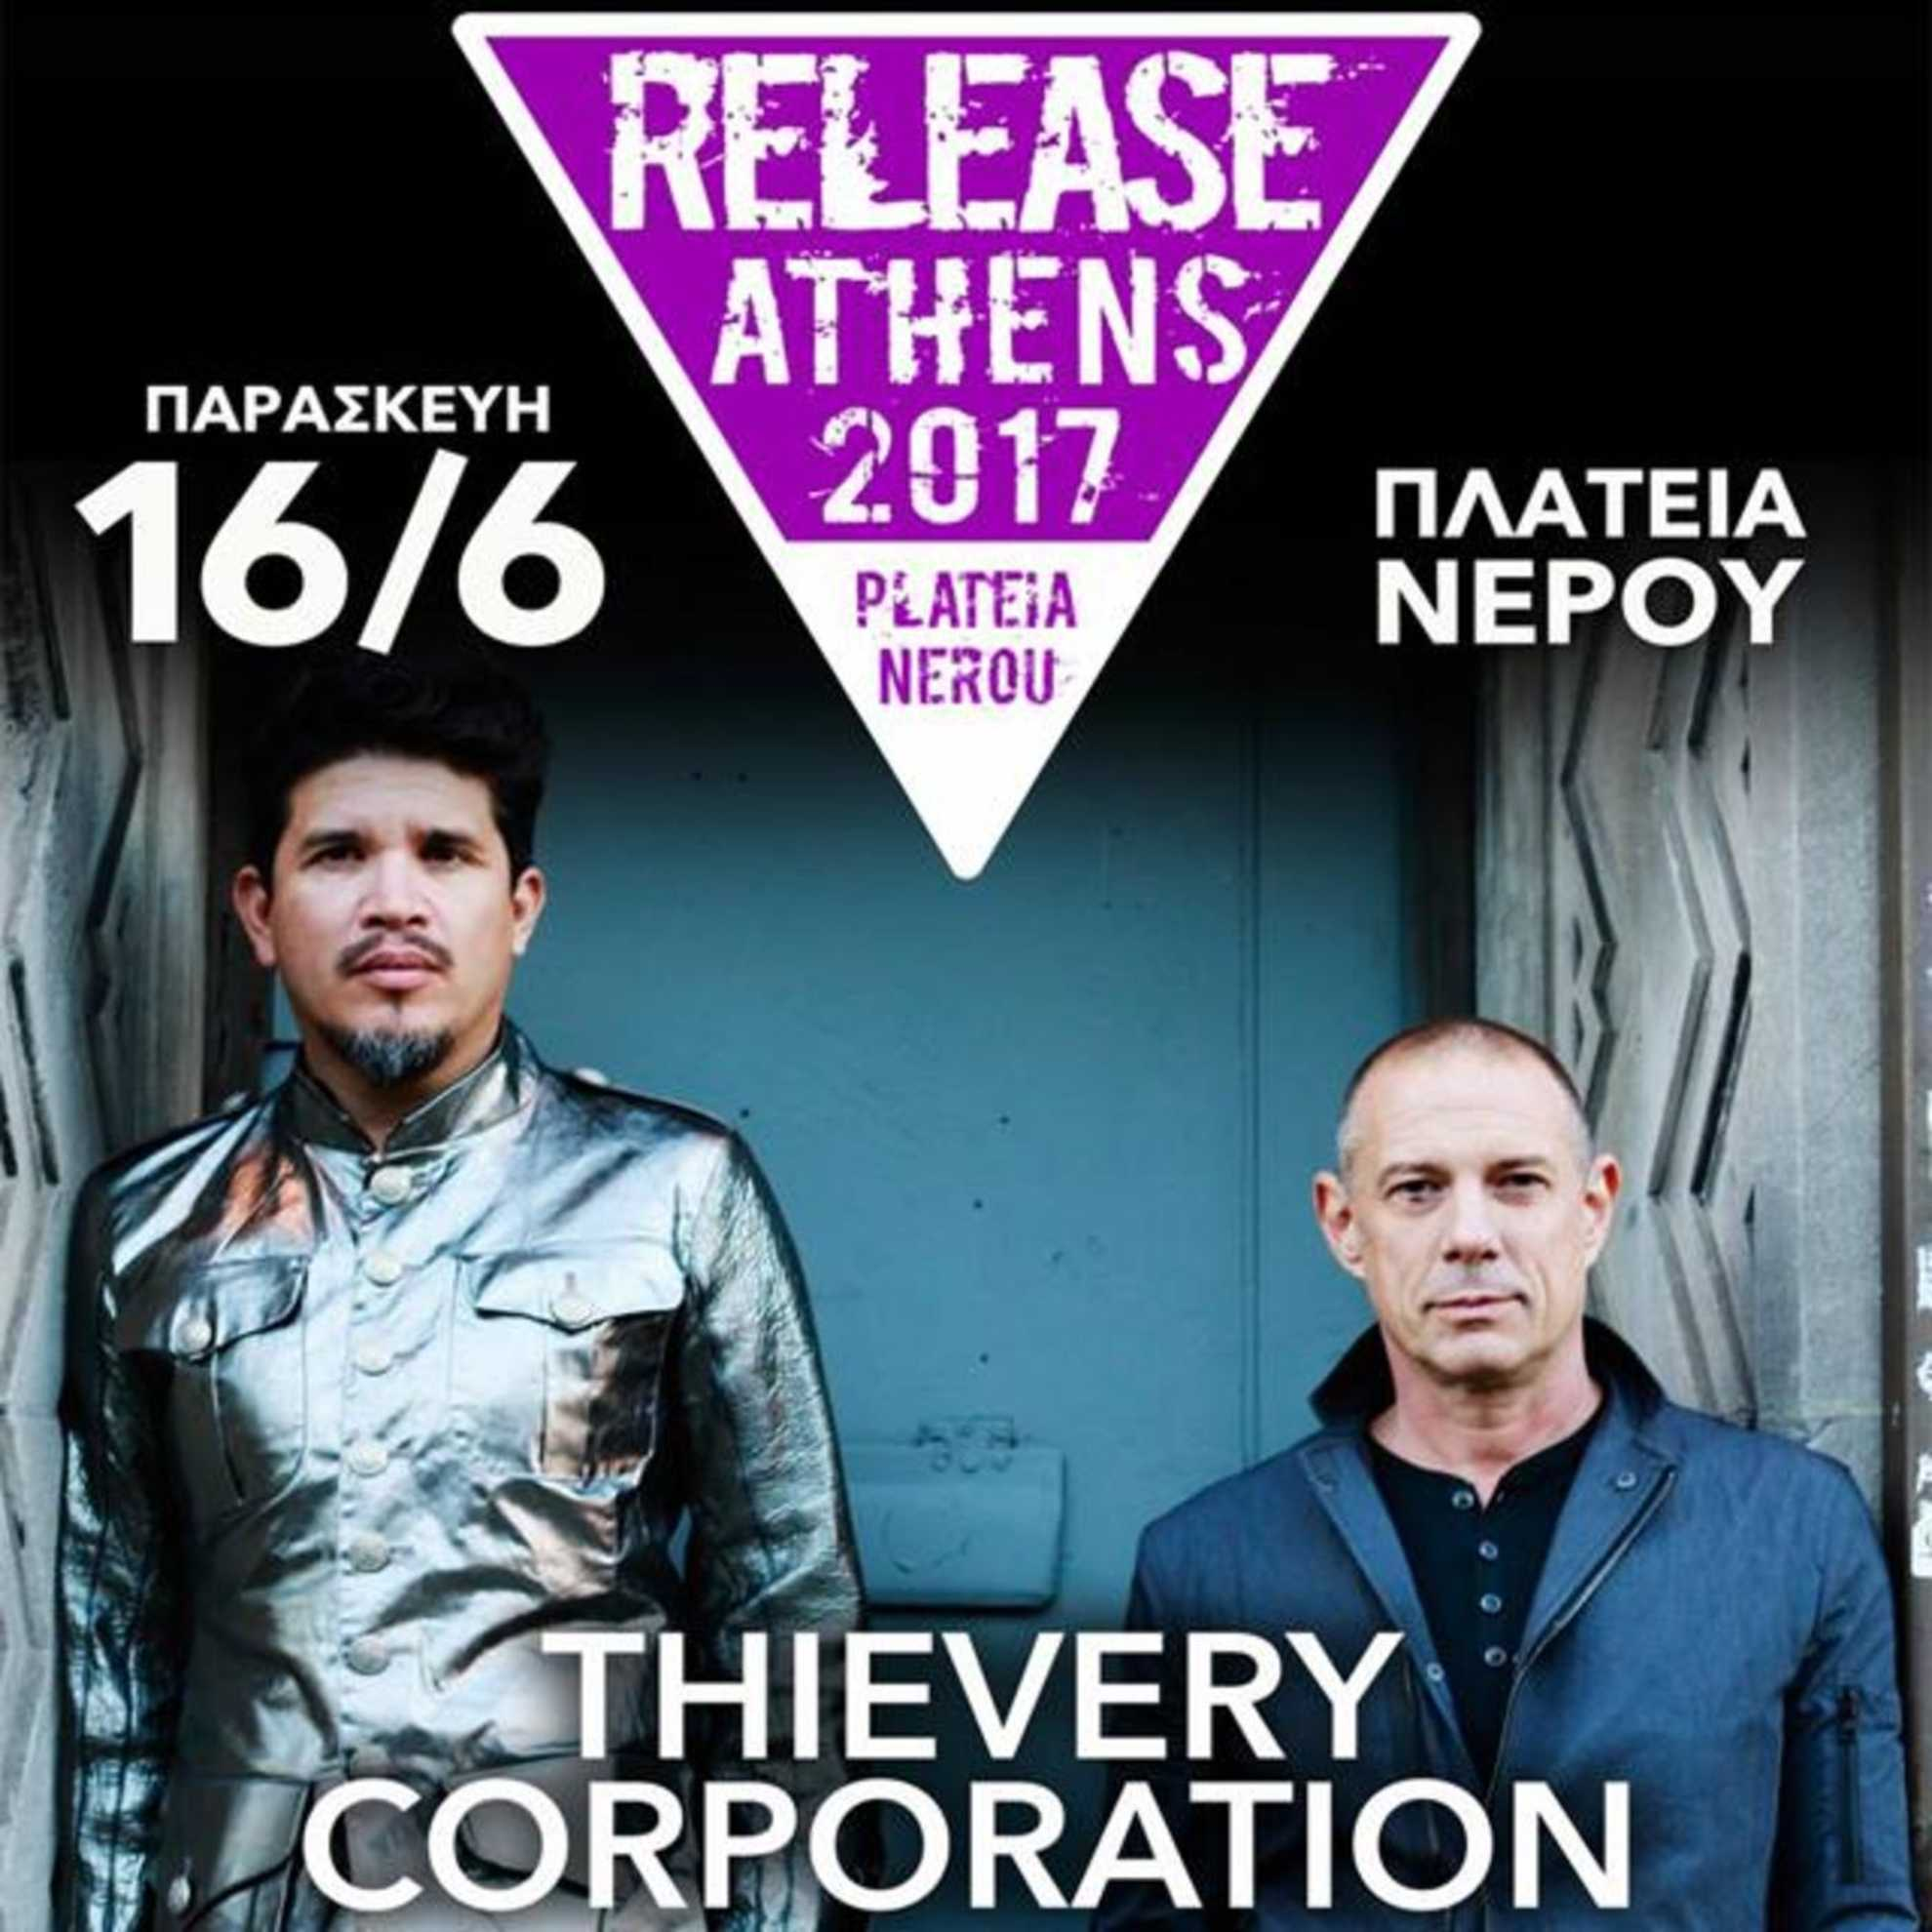 Οι Thievery Corporation & οι Archive στο Release Athens 2017!